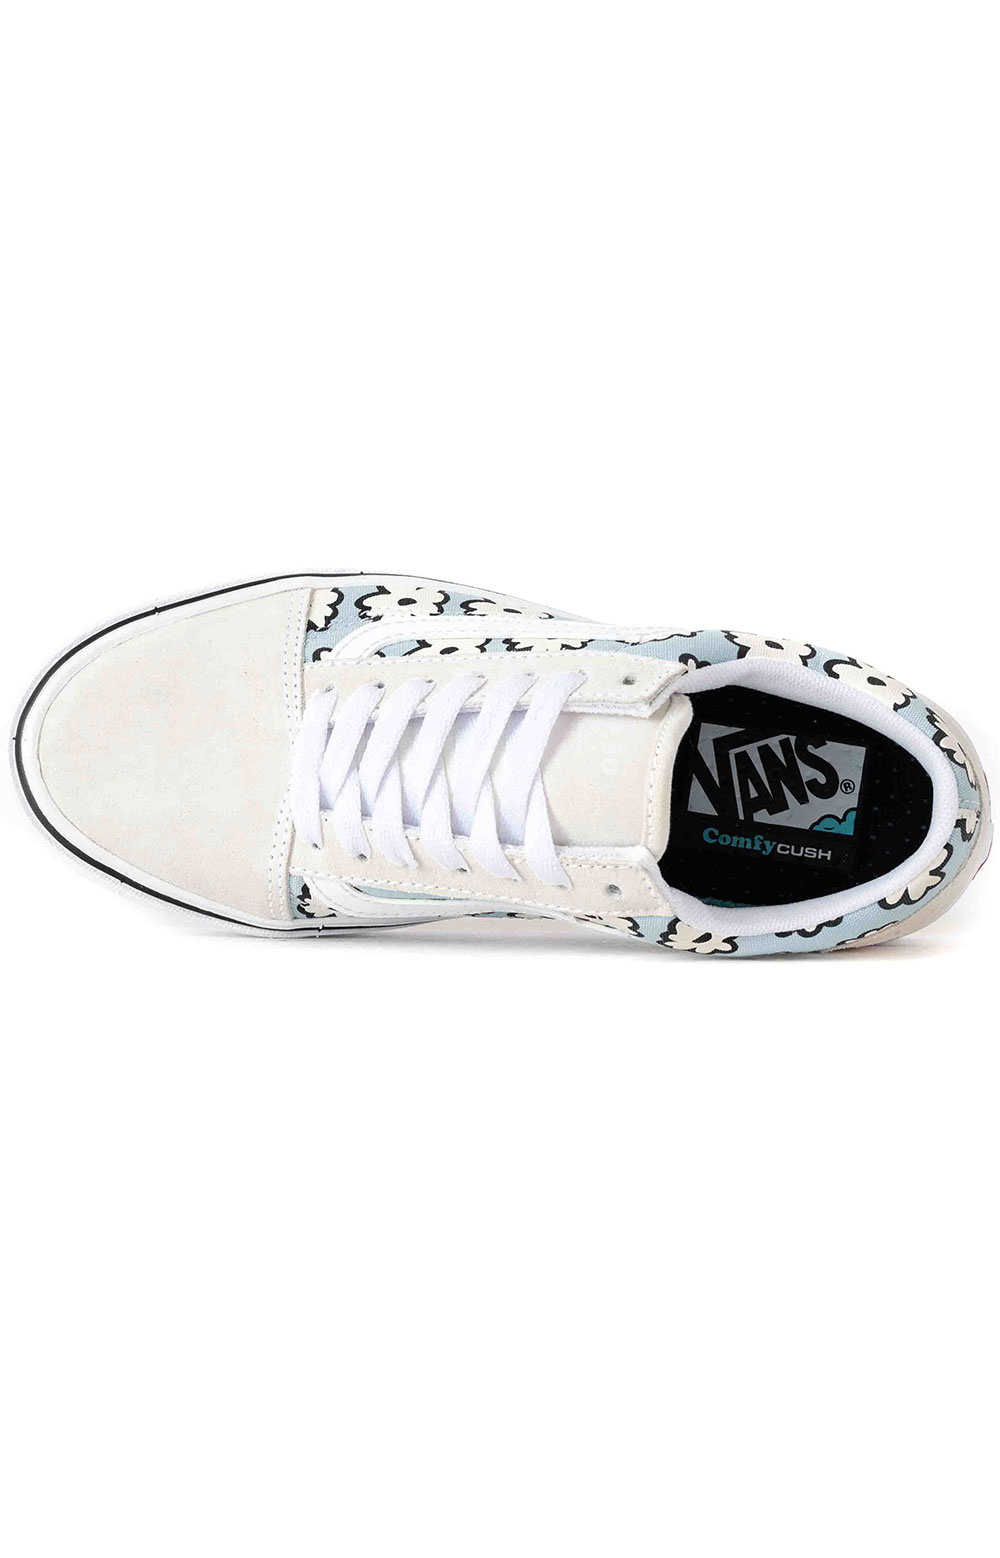 (DYC9KR) Mixed Cozy Comfycush Old Skool Shoes - Marshmallow/Pastel 2